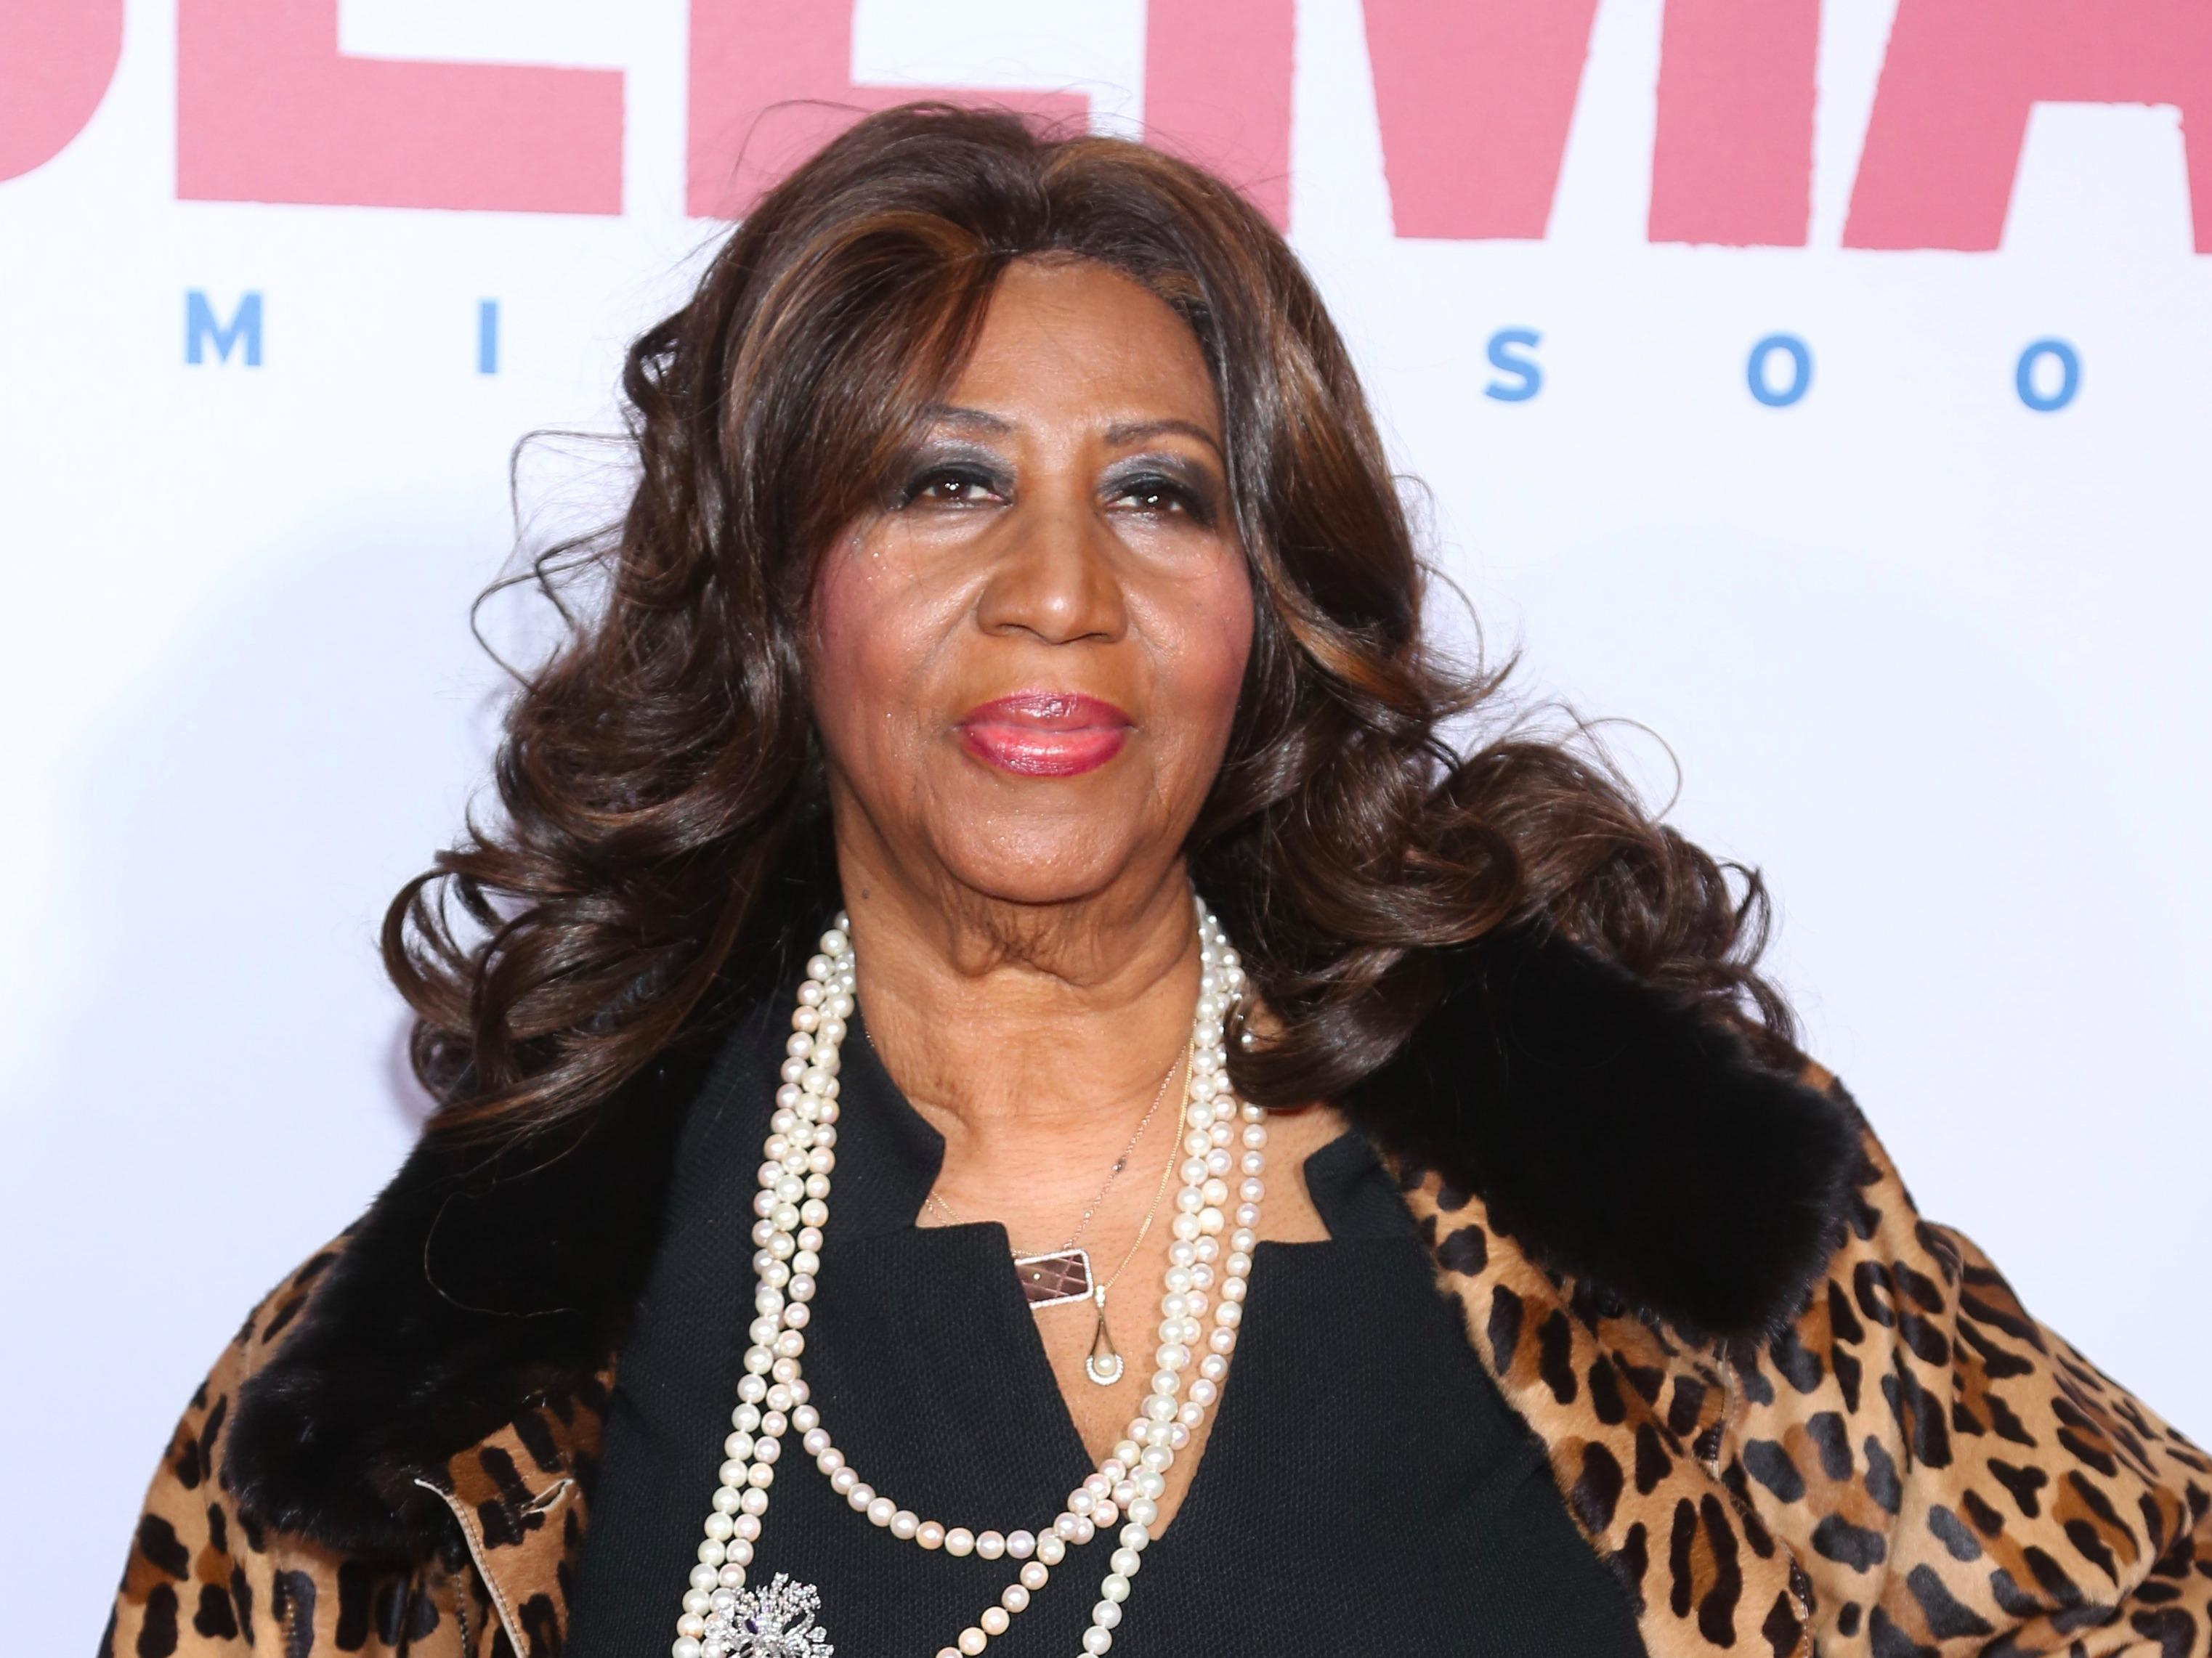 Aretha Franklin sues to stop a documentary on her from being shown at a major film festival